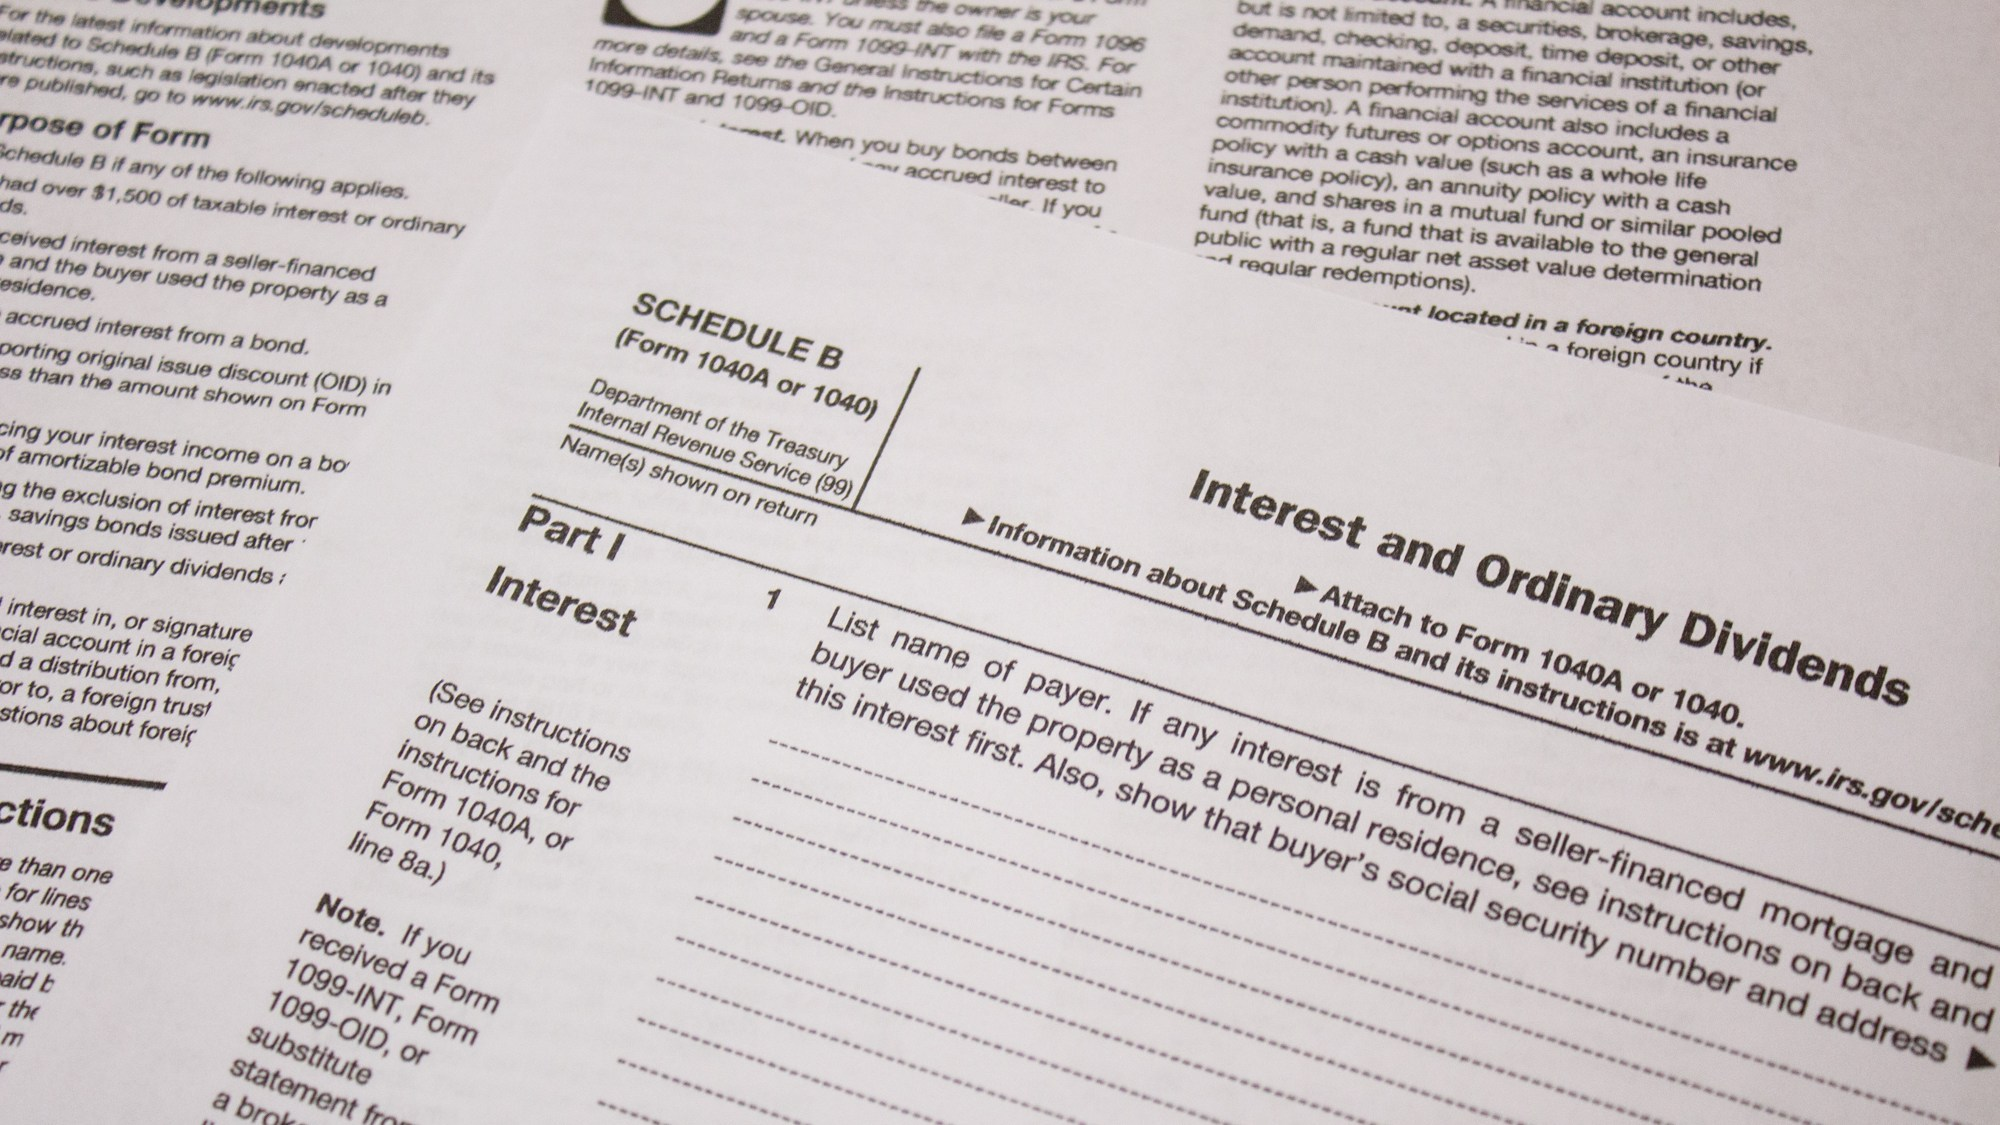 Irs.gov Forms 941 Schedule B